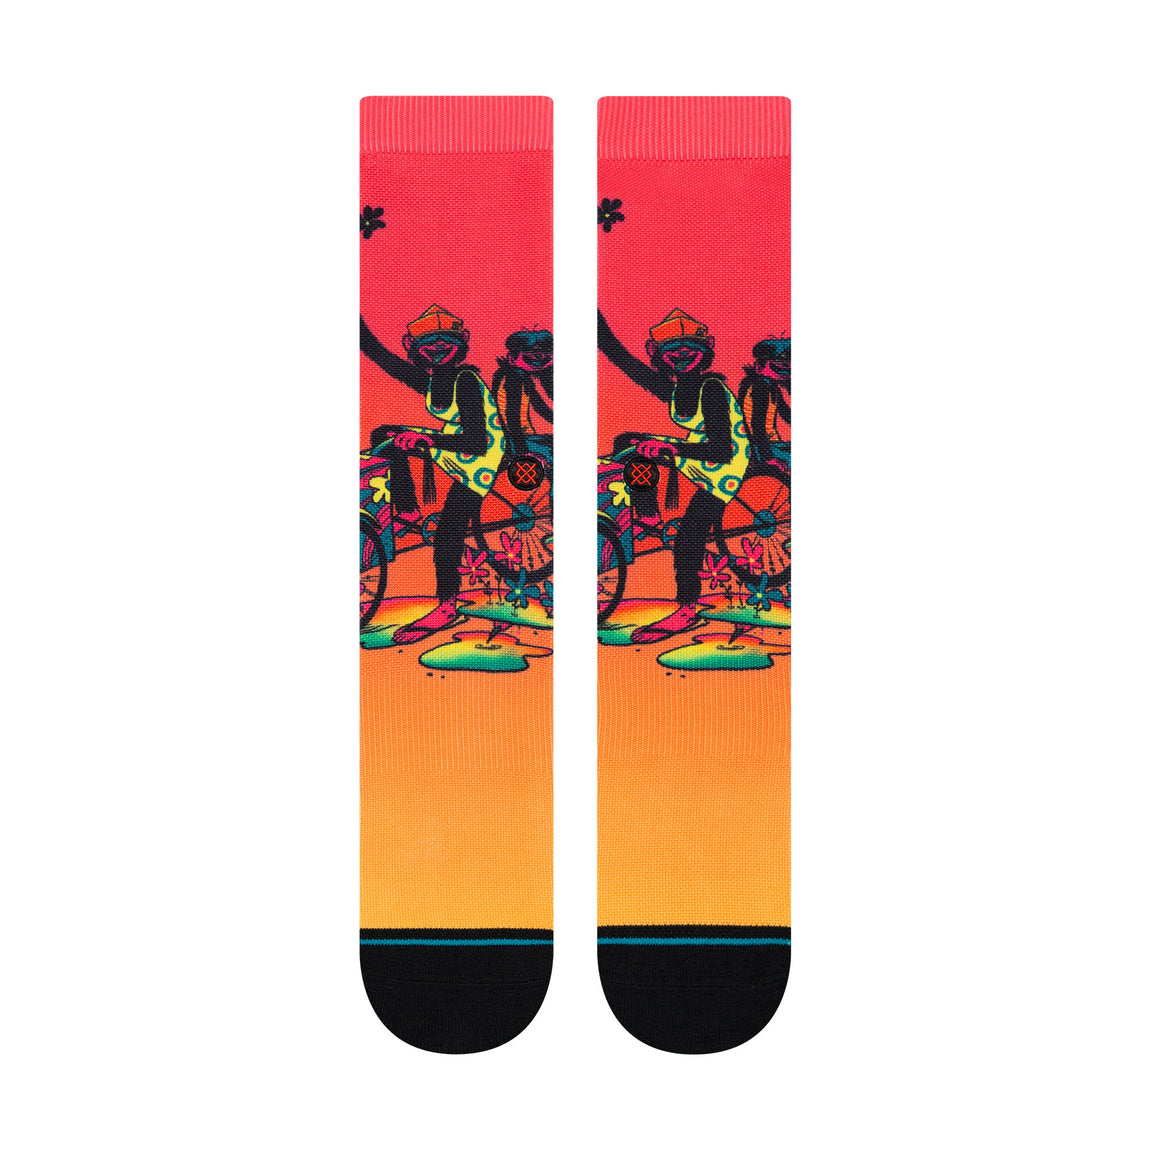 Stance Cruising Socks (Multi) - Stance Cruising Socks (Multi) -